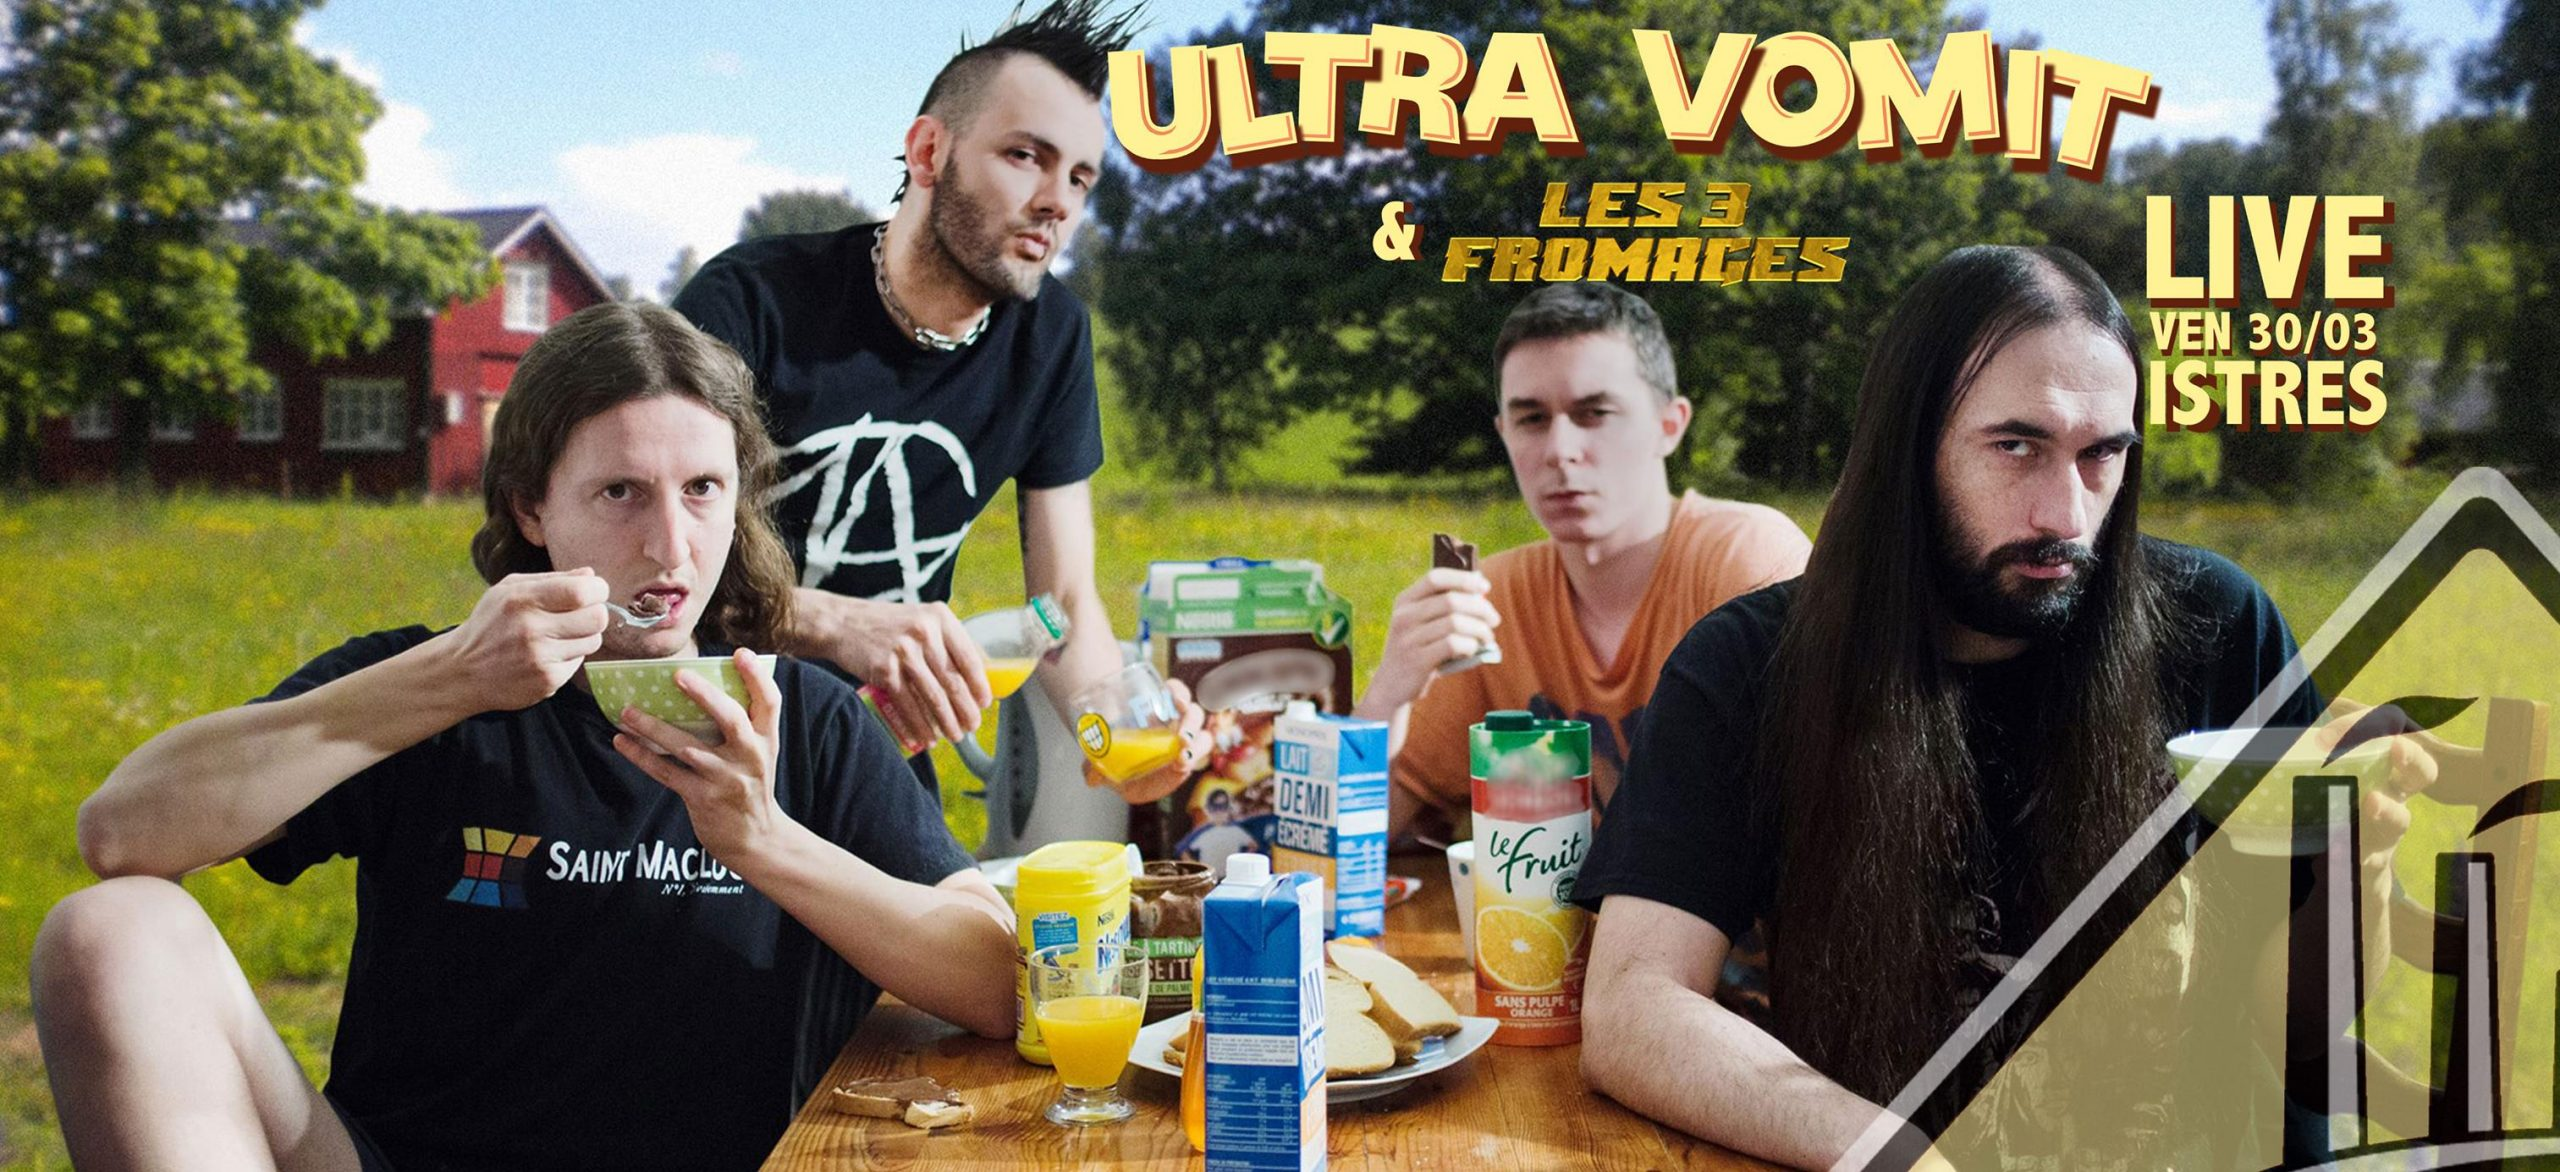 3 fromages Ultra Vomit